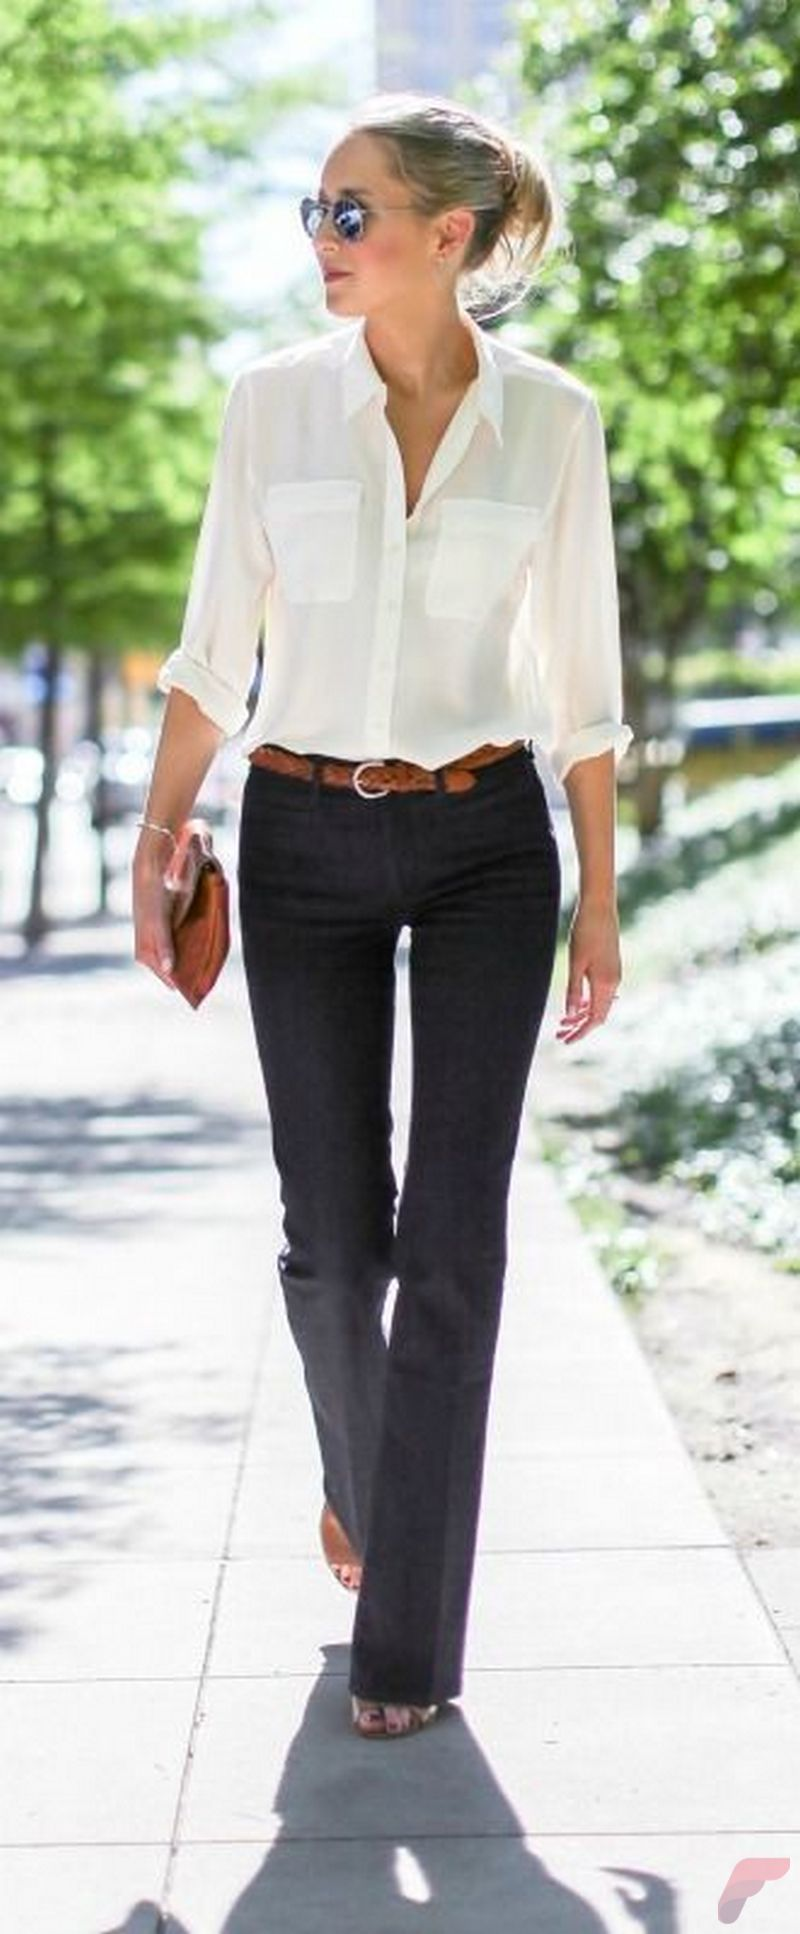 Women white shirt for work (243)